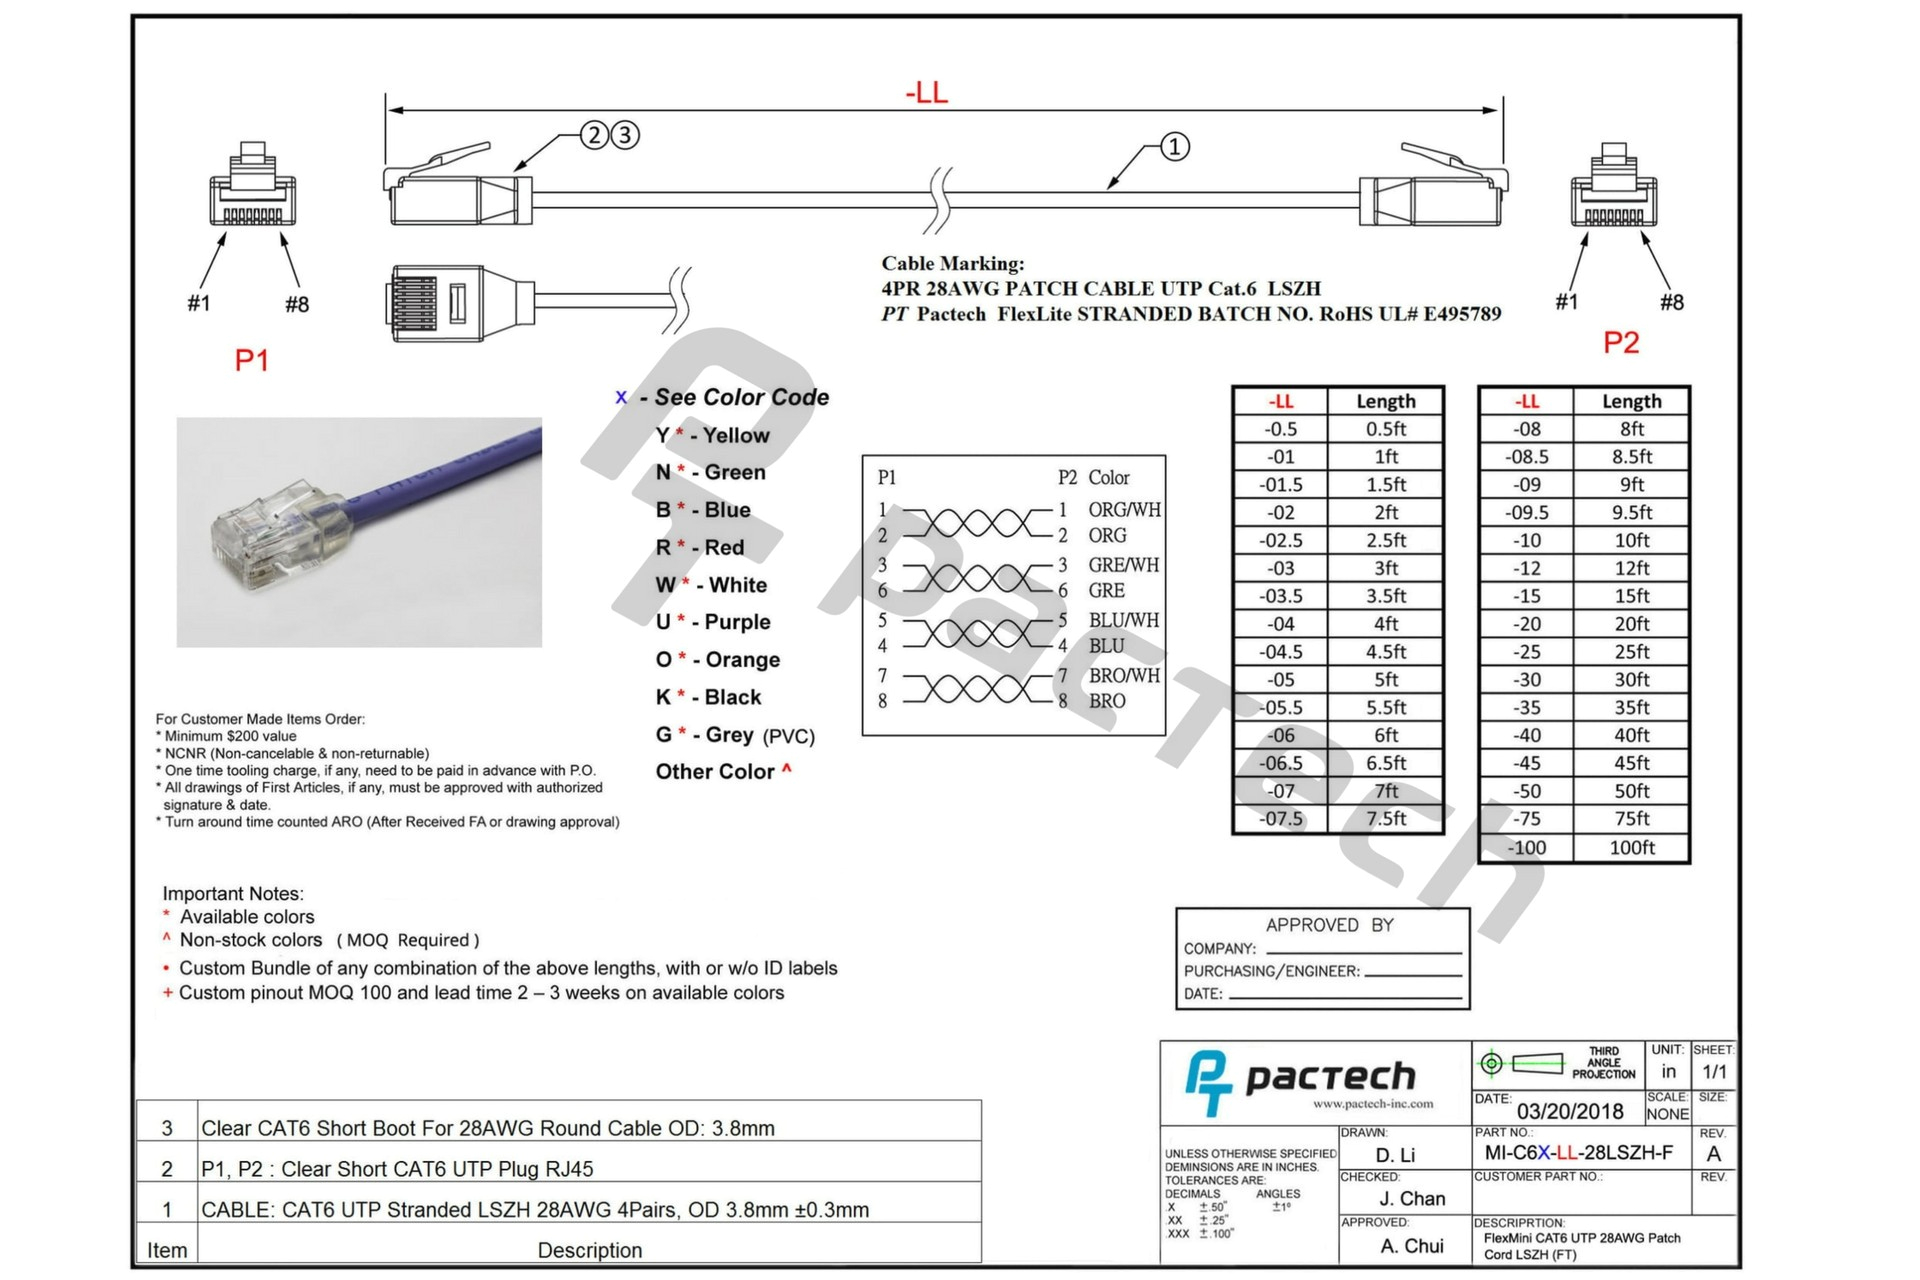 rj45 to rj12 wiring diagram beautiful rj11 to rj45 wall jack wiring diagram trusted schematic diagrams e280a2 jpg